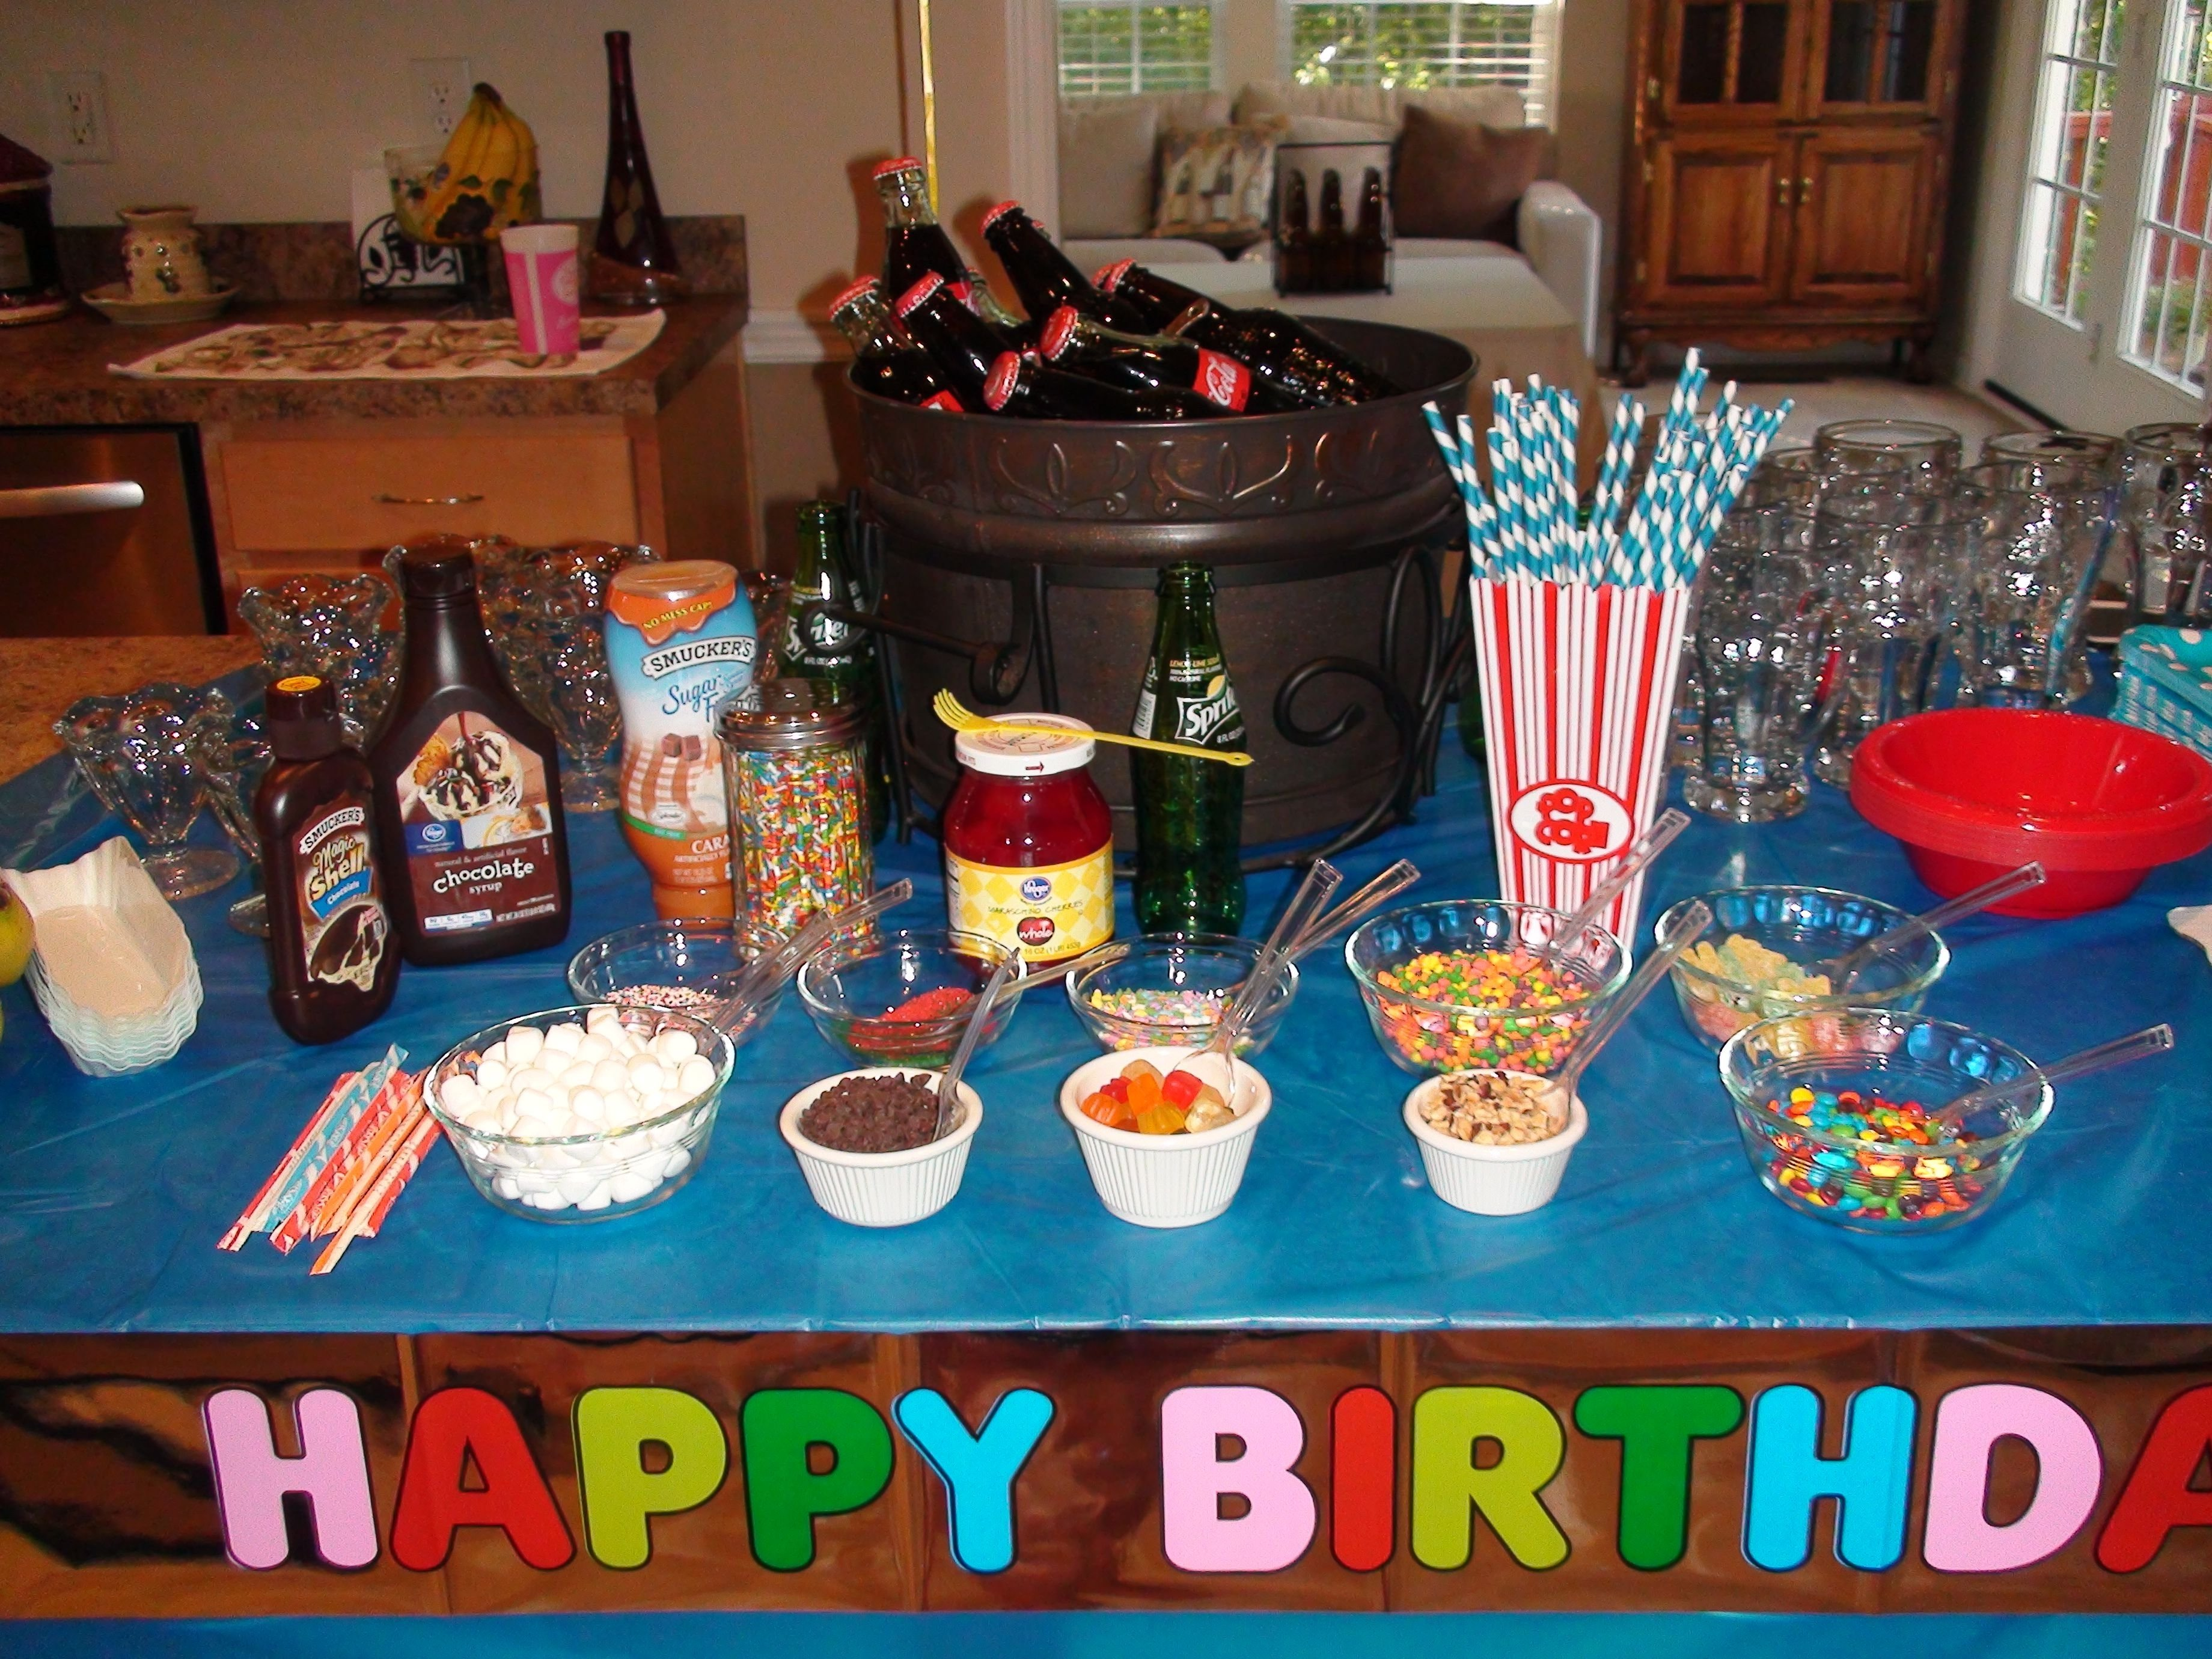 10 Great 12 Yr Old Birthday Ideas 12 year old party root beer floats banana splits ice cream with 5 2021